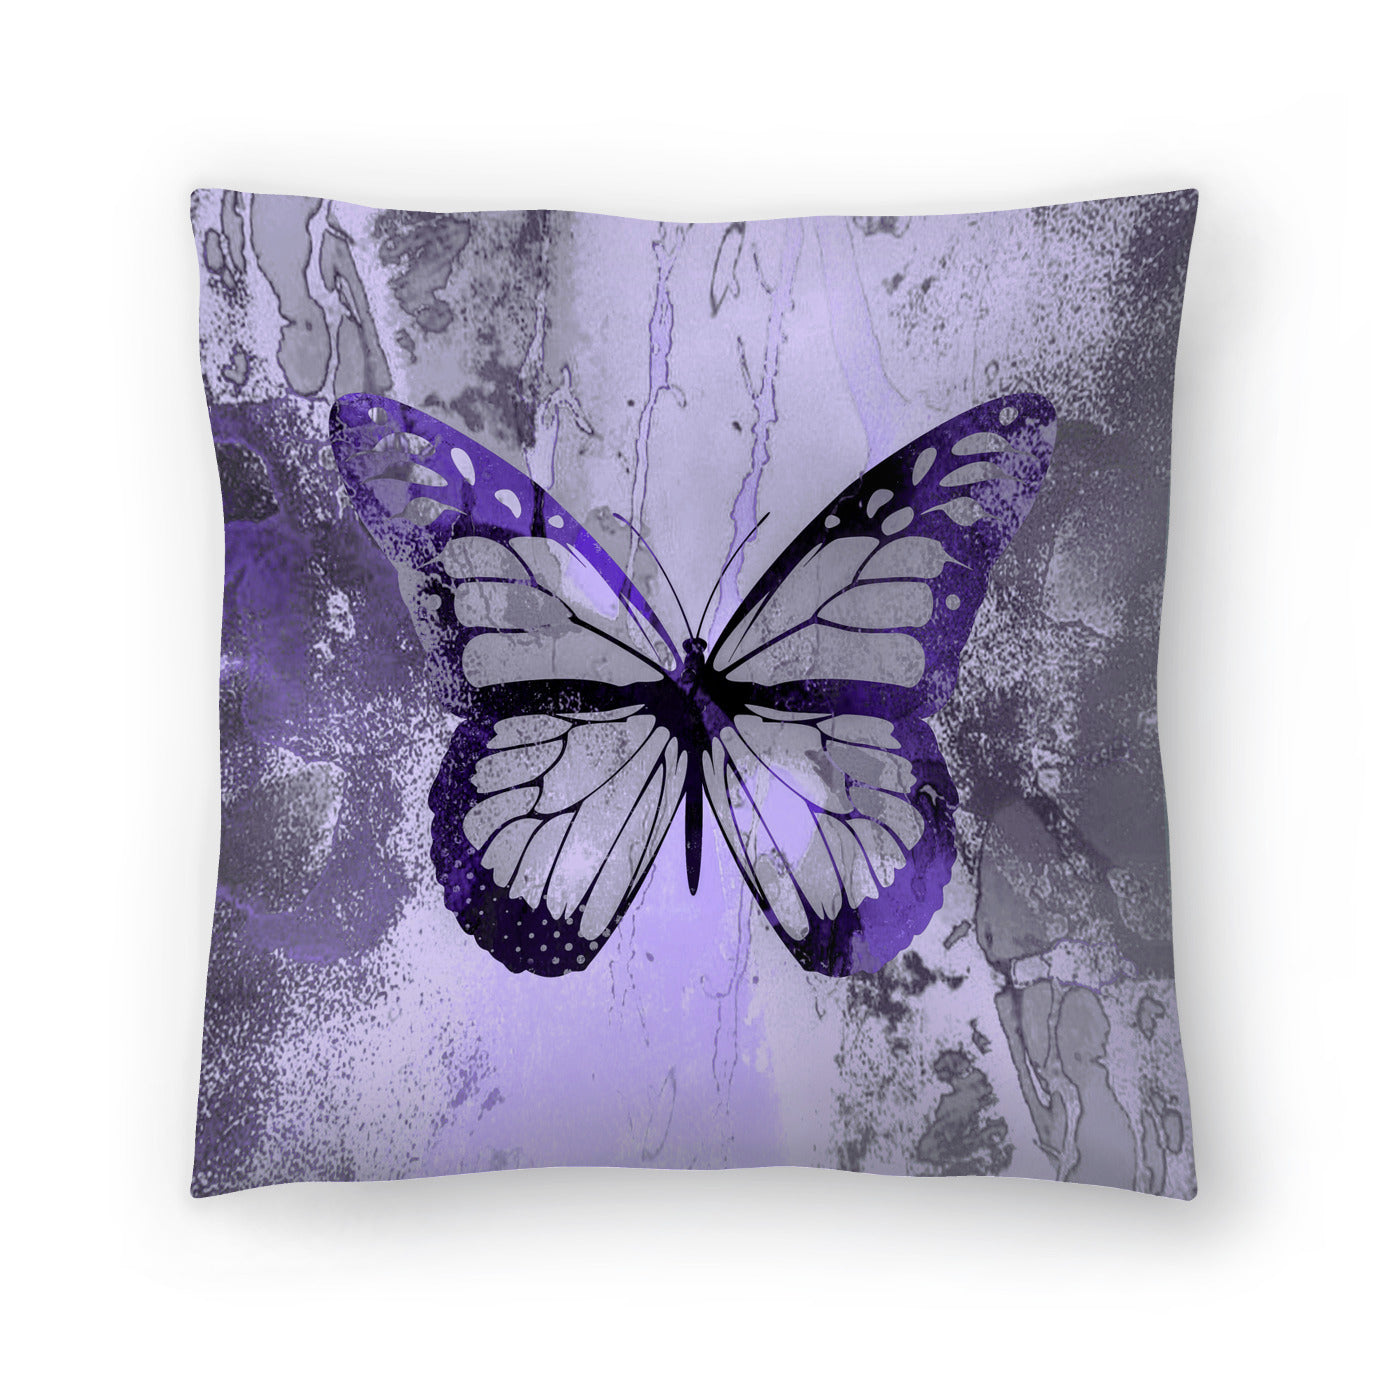 Fancy Butterfly by Lebens Art Decorative Pillow - Decorative Pillow - Americanflat